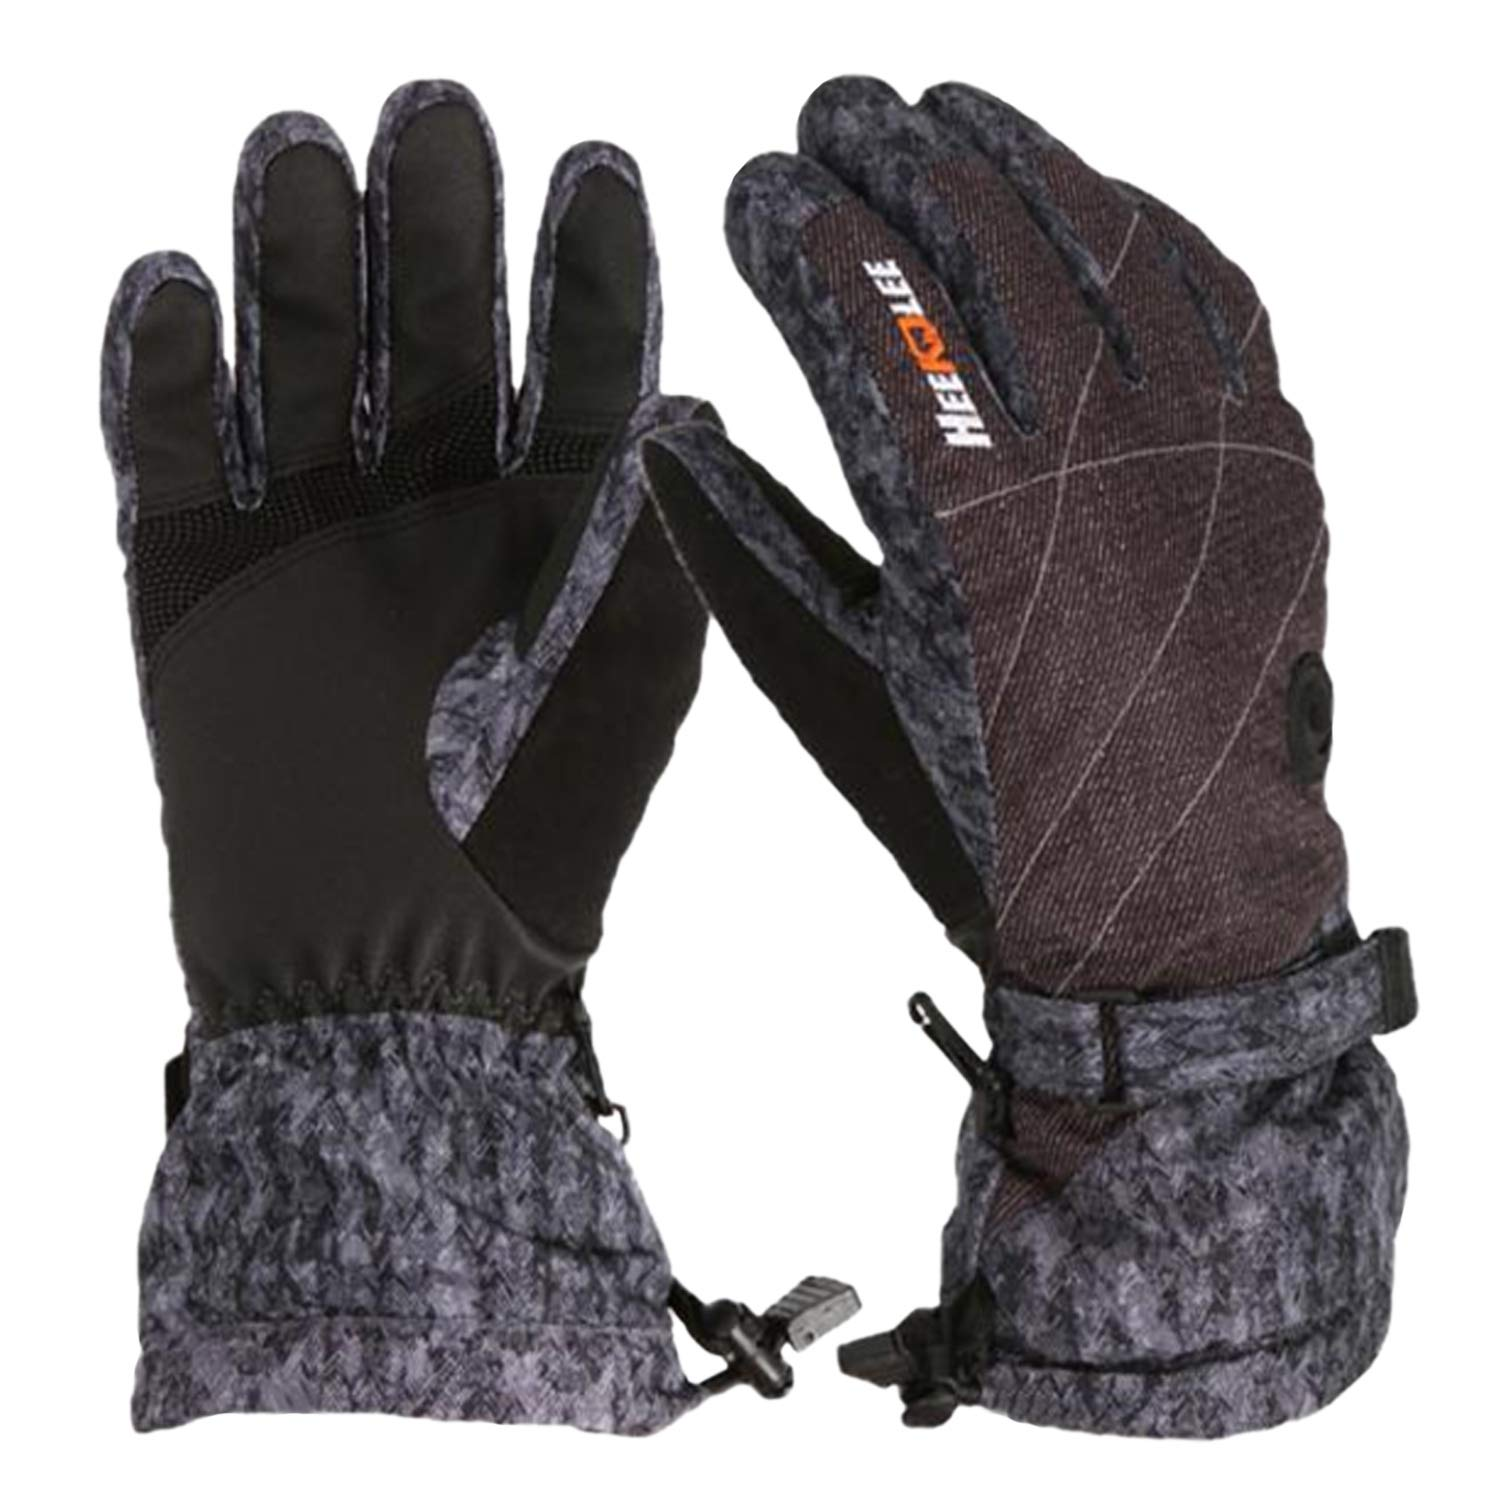 LuvnFun Kids winter gloves - snow & ski gloves for cold weather Thinsulate Cotton warm waterproof gloves for boys and girls